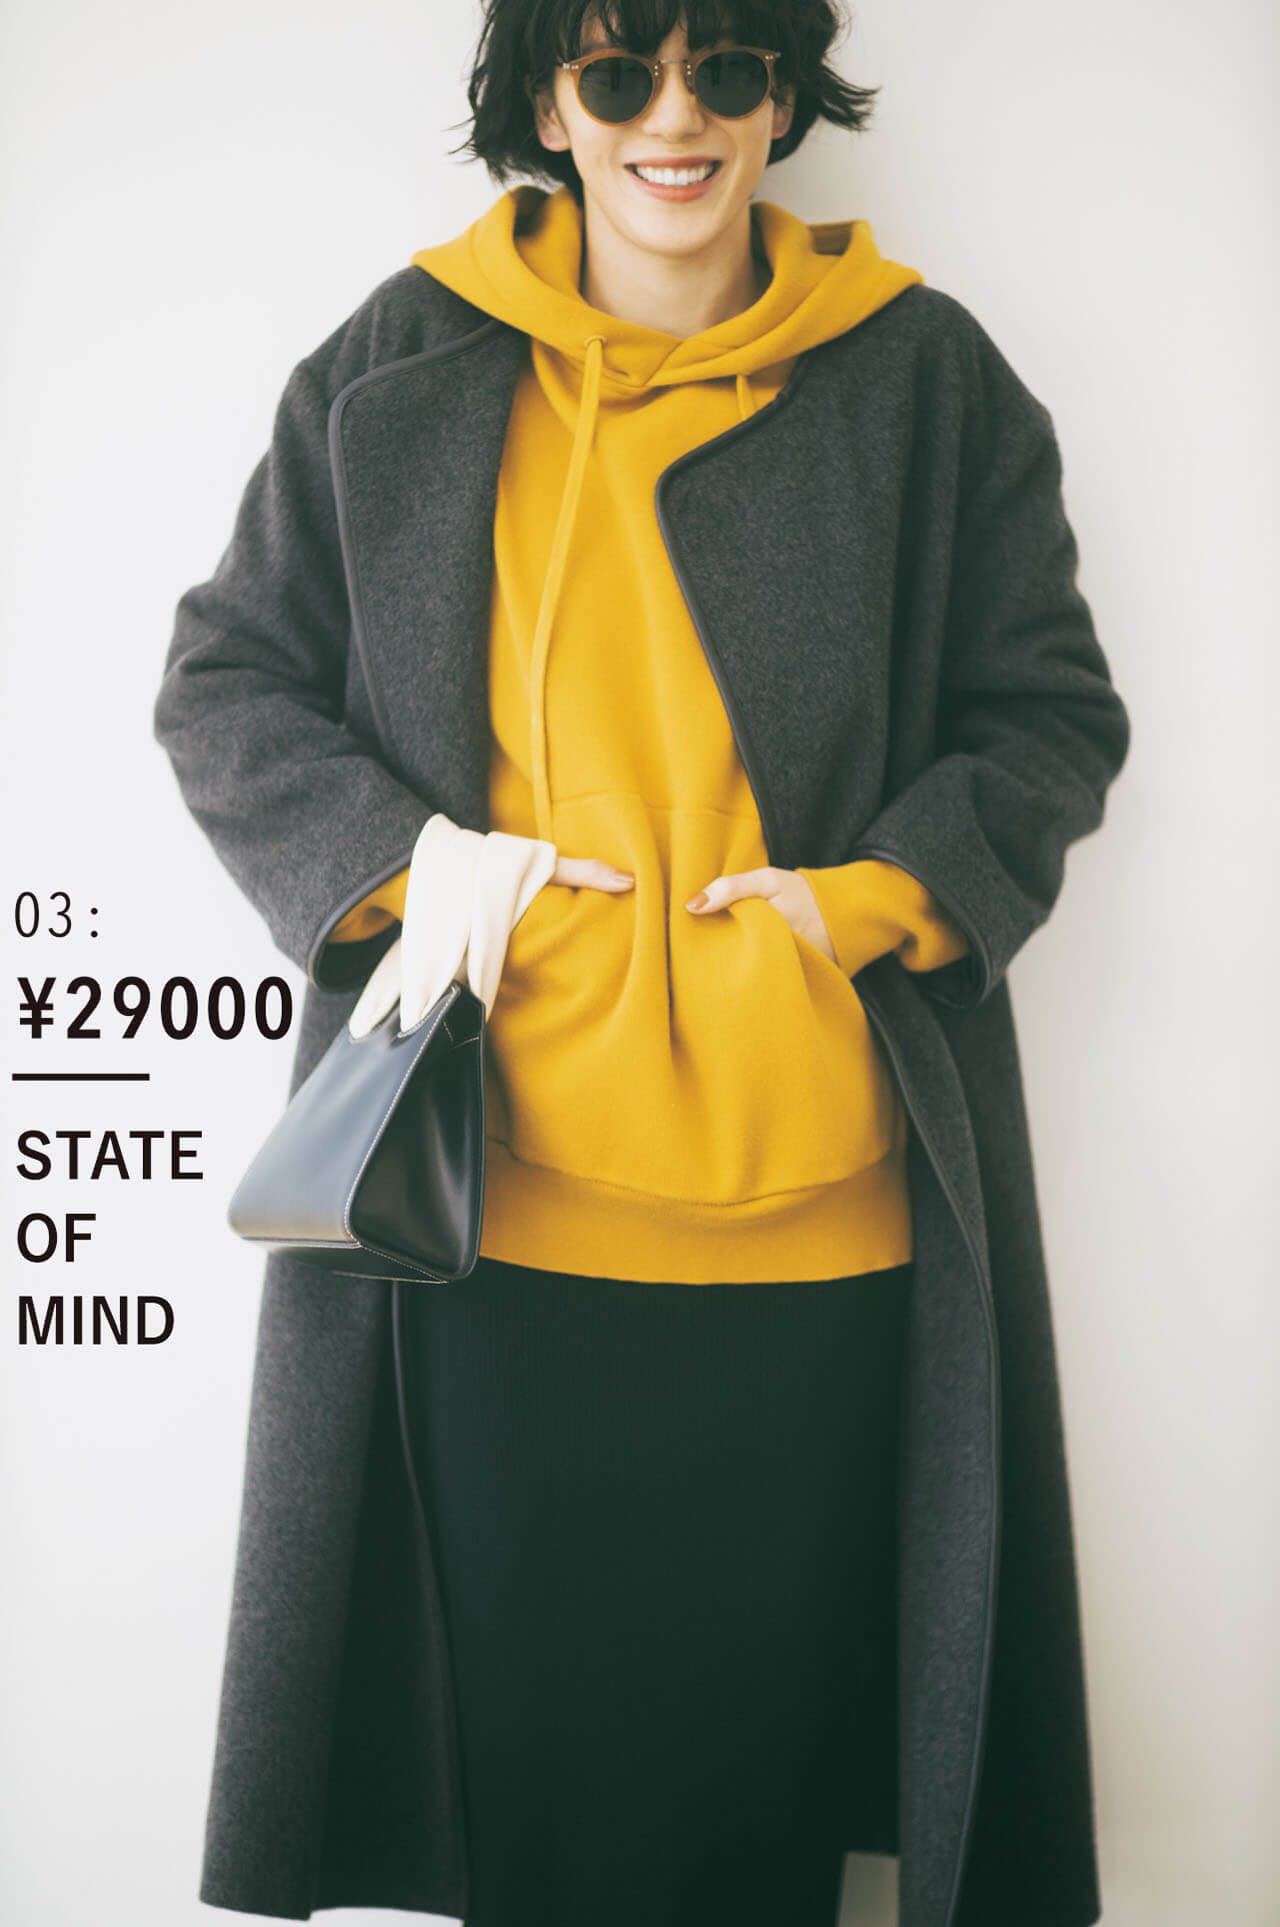 03 : ¥29000 STATE OF MIND